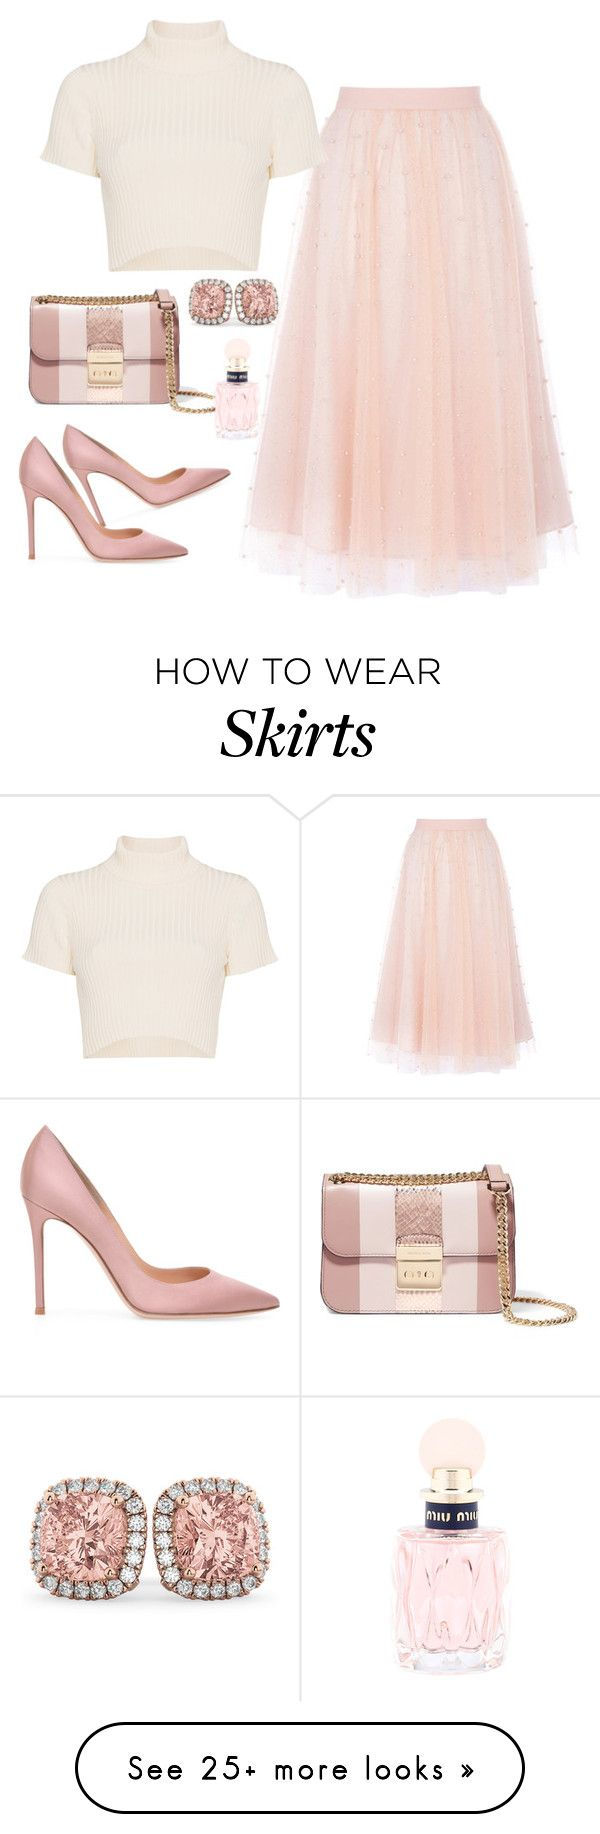 """Untitled #637"" by aida0488 on Polyvore featuring Staud, MICHAEL Michael Kors, Allurez and Miu Miu"